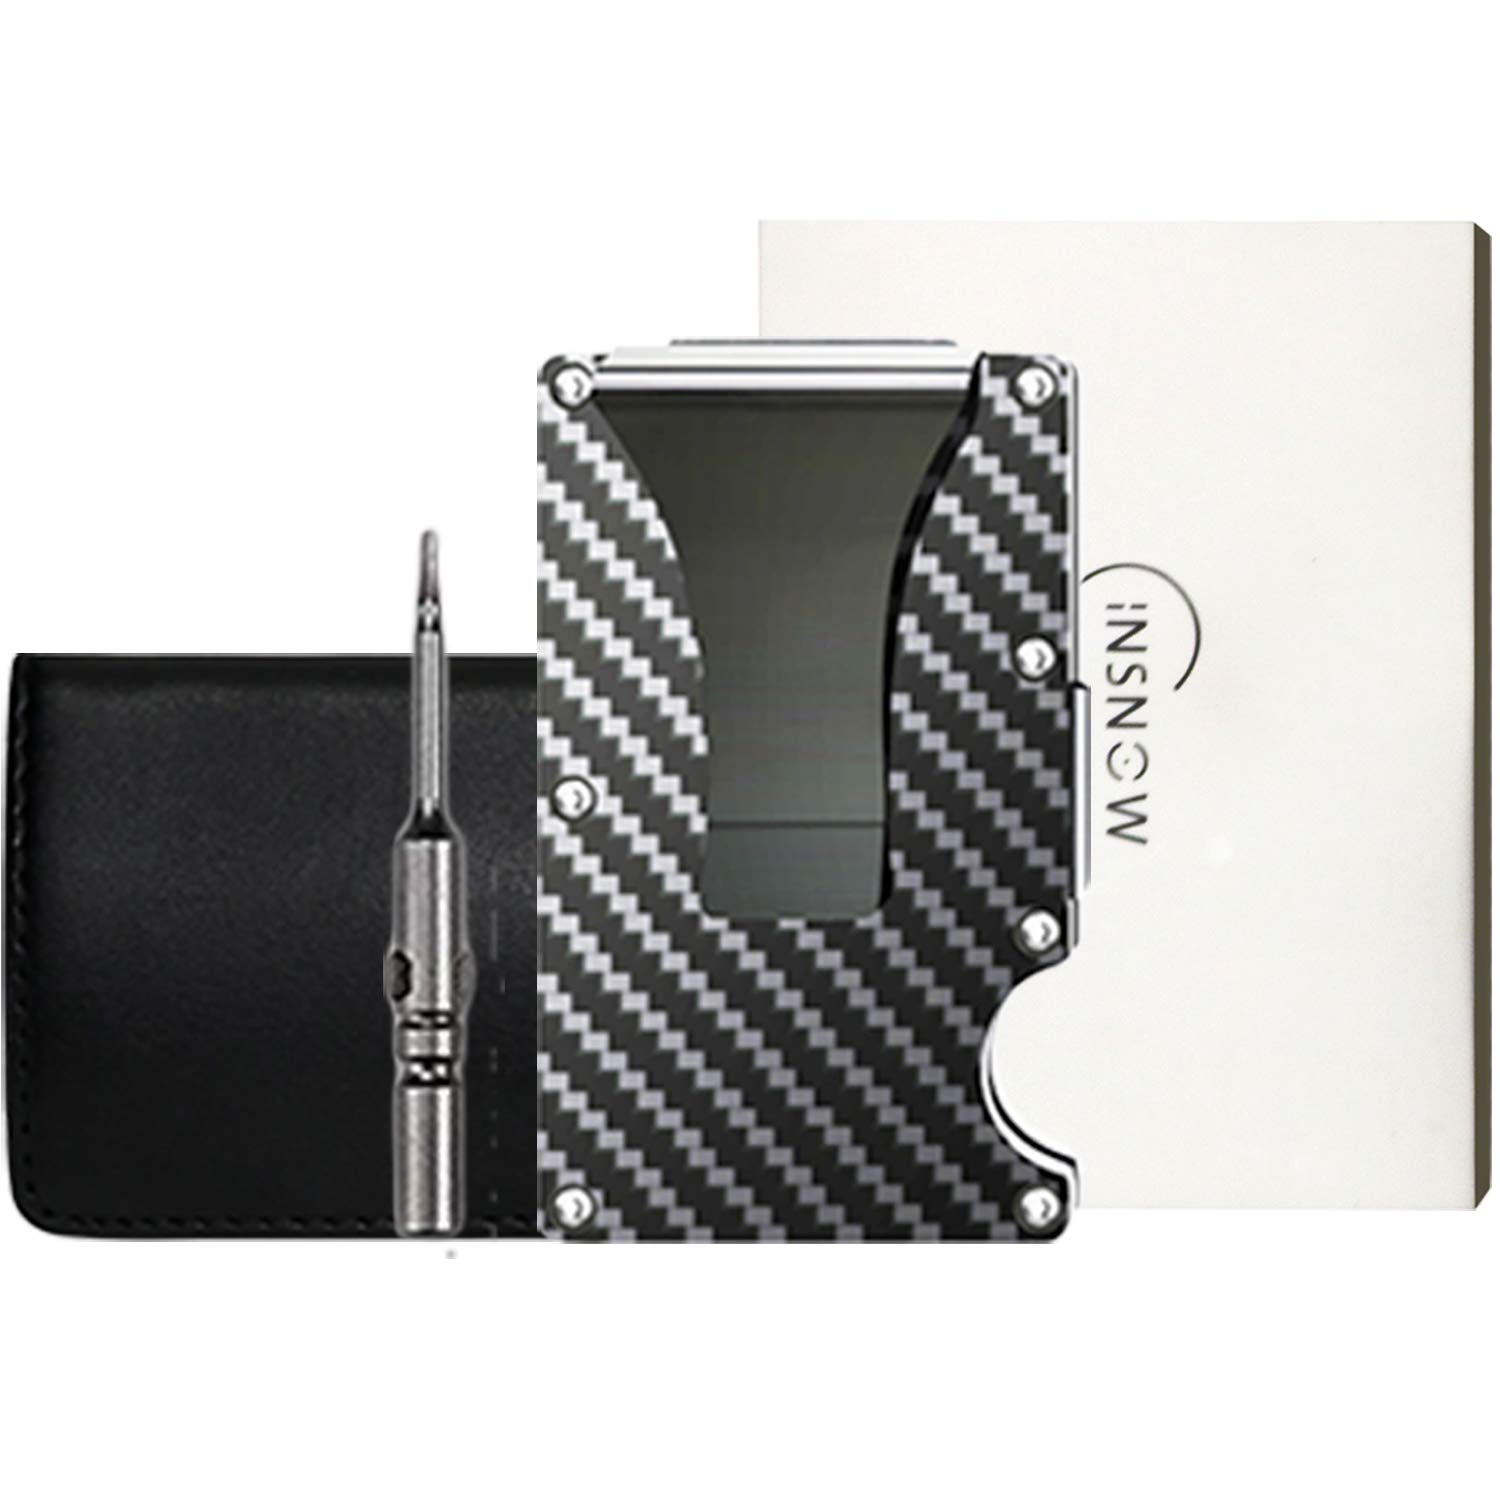 Carbon Fiber Wallet + Business Card Case Gift Set - RFID Blocking Slim Money Clip and Business Card Holder - Minimalist Credit Card Holder Organizer Protector Front Pocket Metal Money Clip for Men Price: $18.99